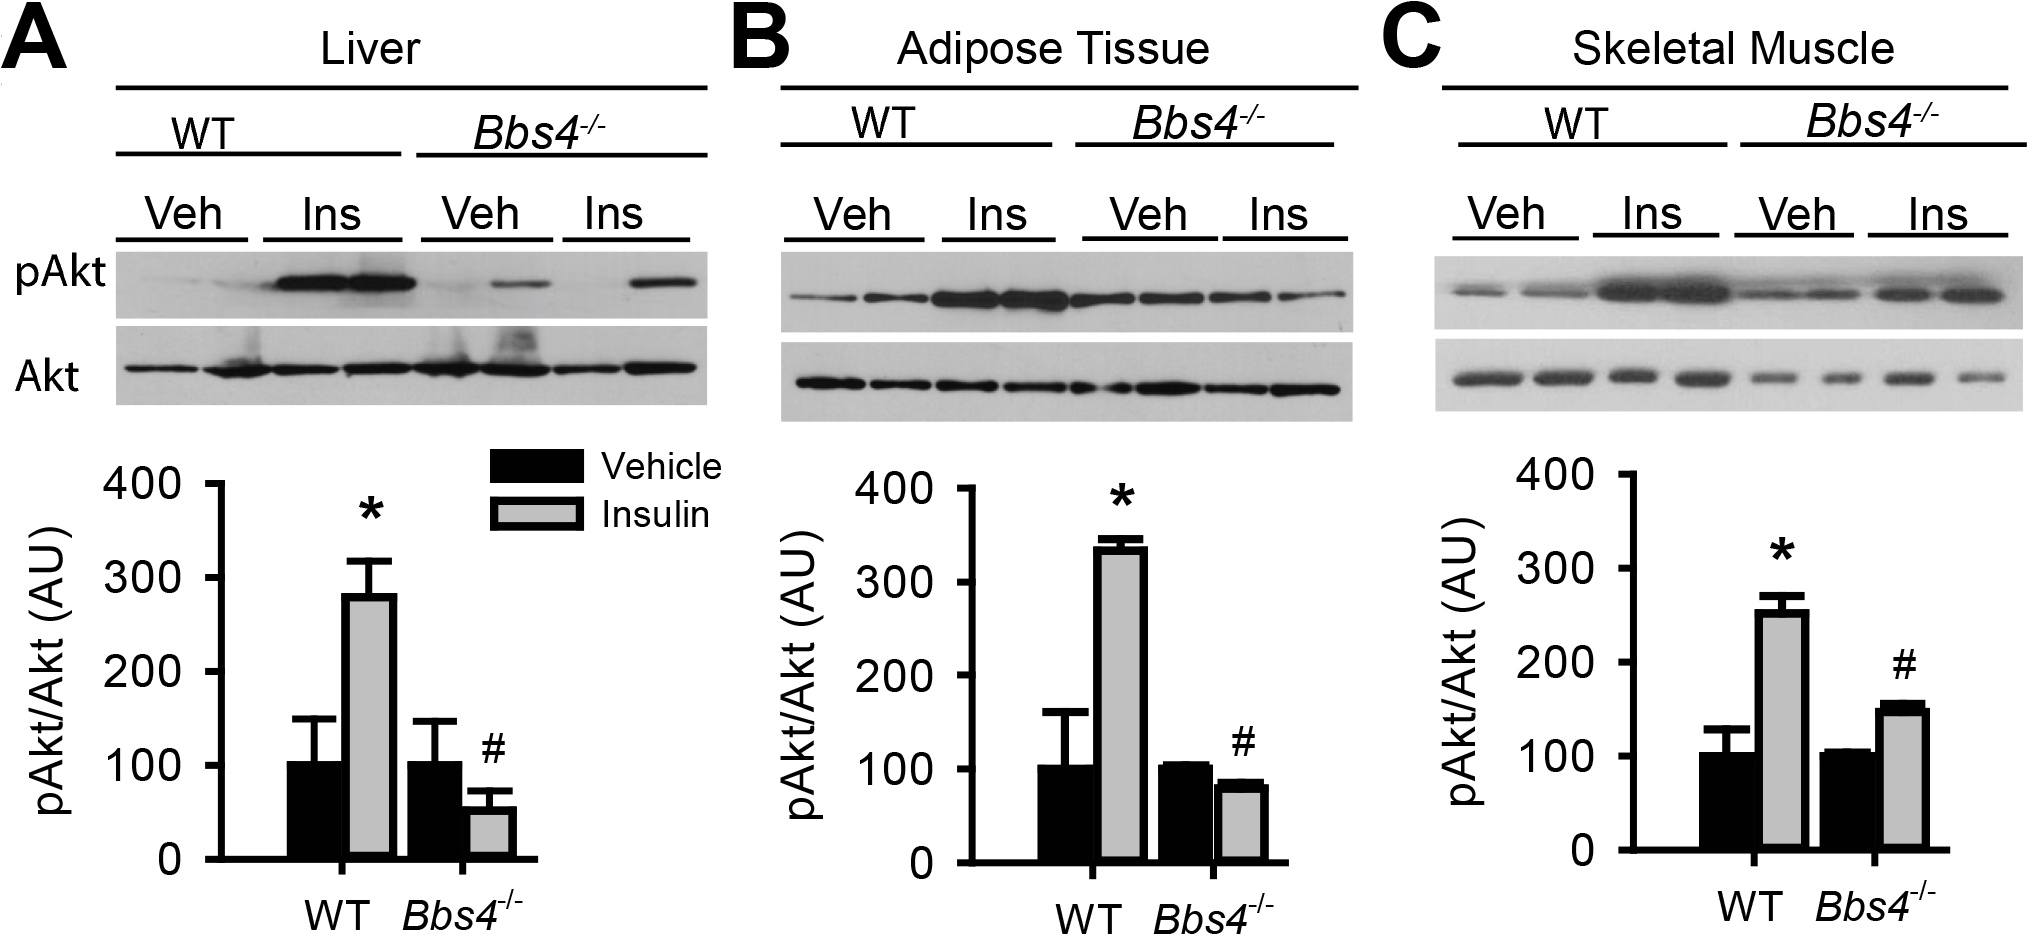 Obese Bbs4 null mice have reduced IR signaling (using phosphorylated Akt at S473 [pAkt] as readout), in liver (A), white adipose tissue (B) and skeletal muscle (C).